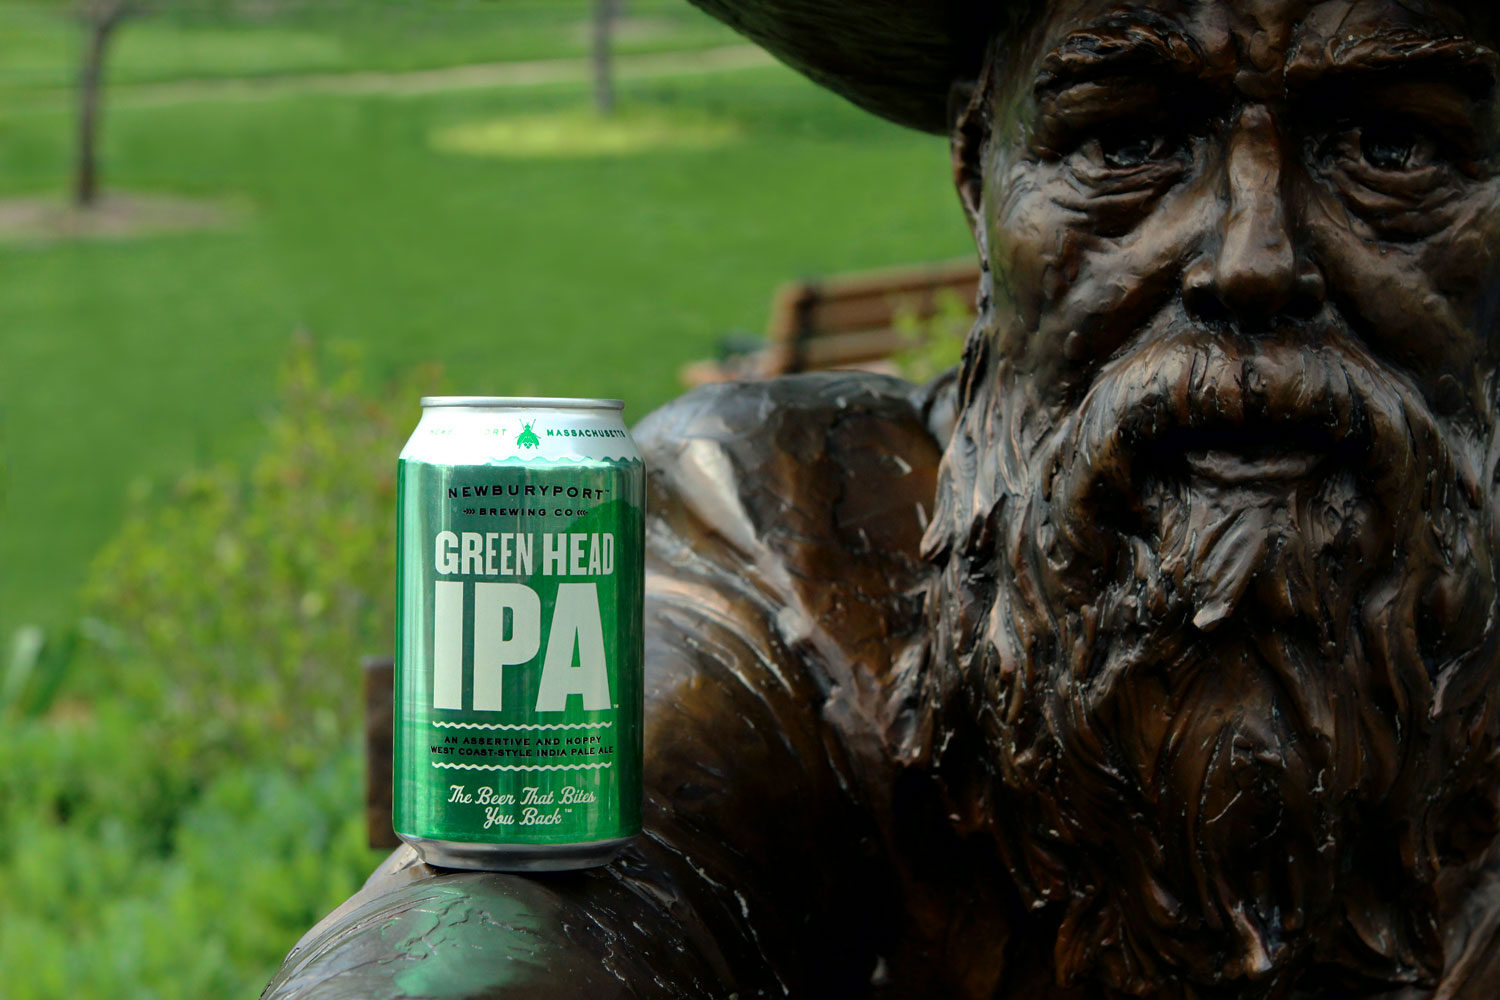 Newburyport Green Head west coast IPA.